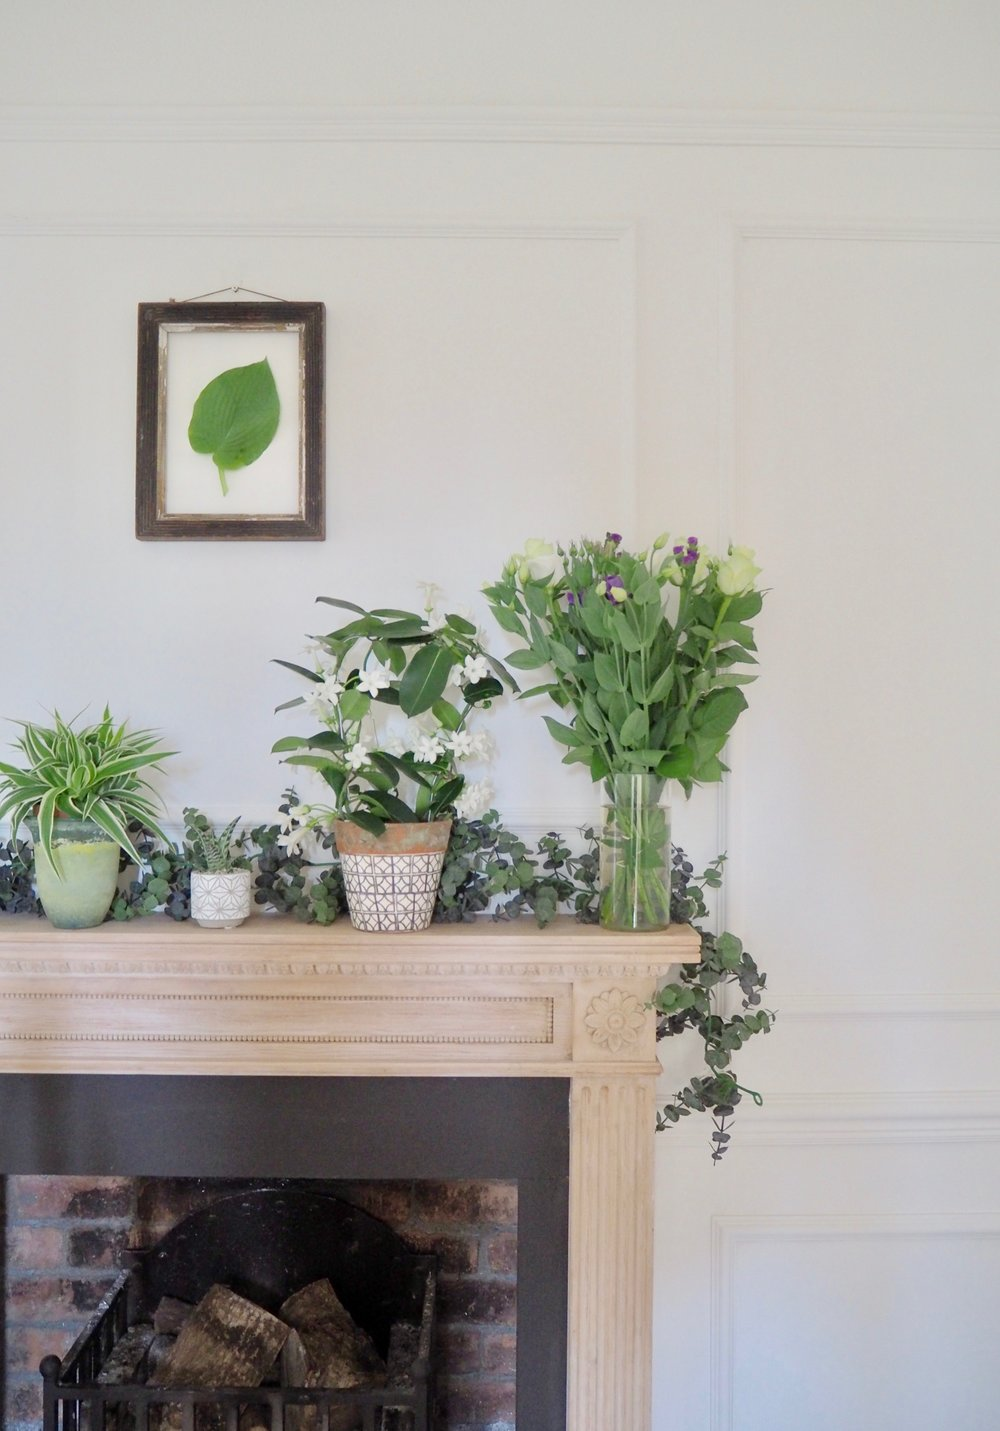 Looks and styles of mantelpieces and how to dress and style your mantelpiece.